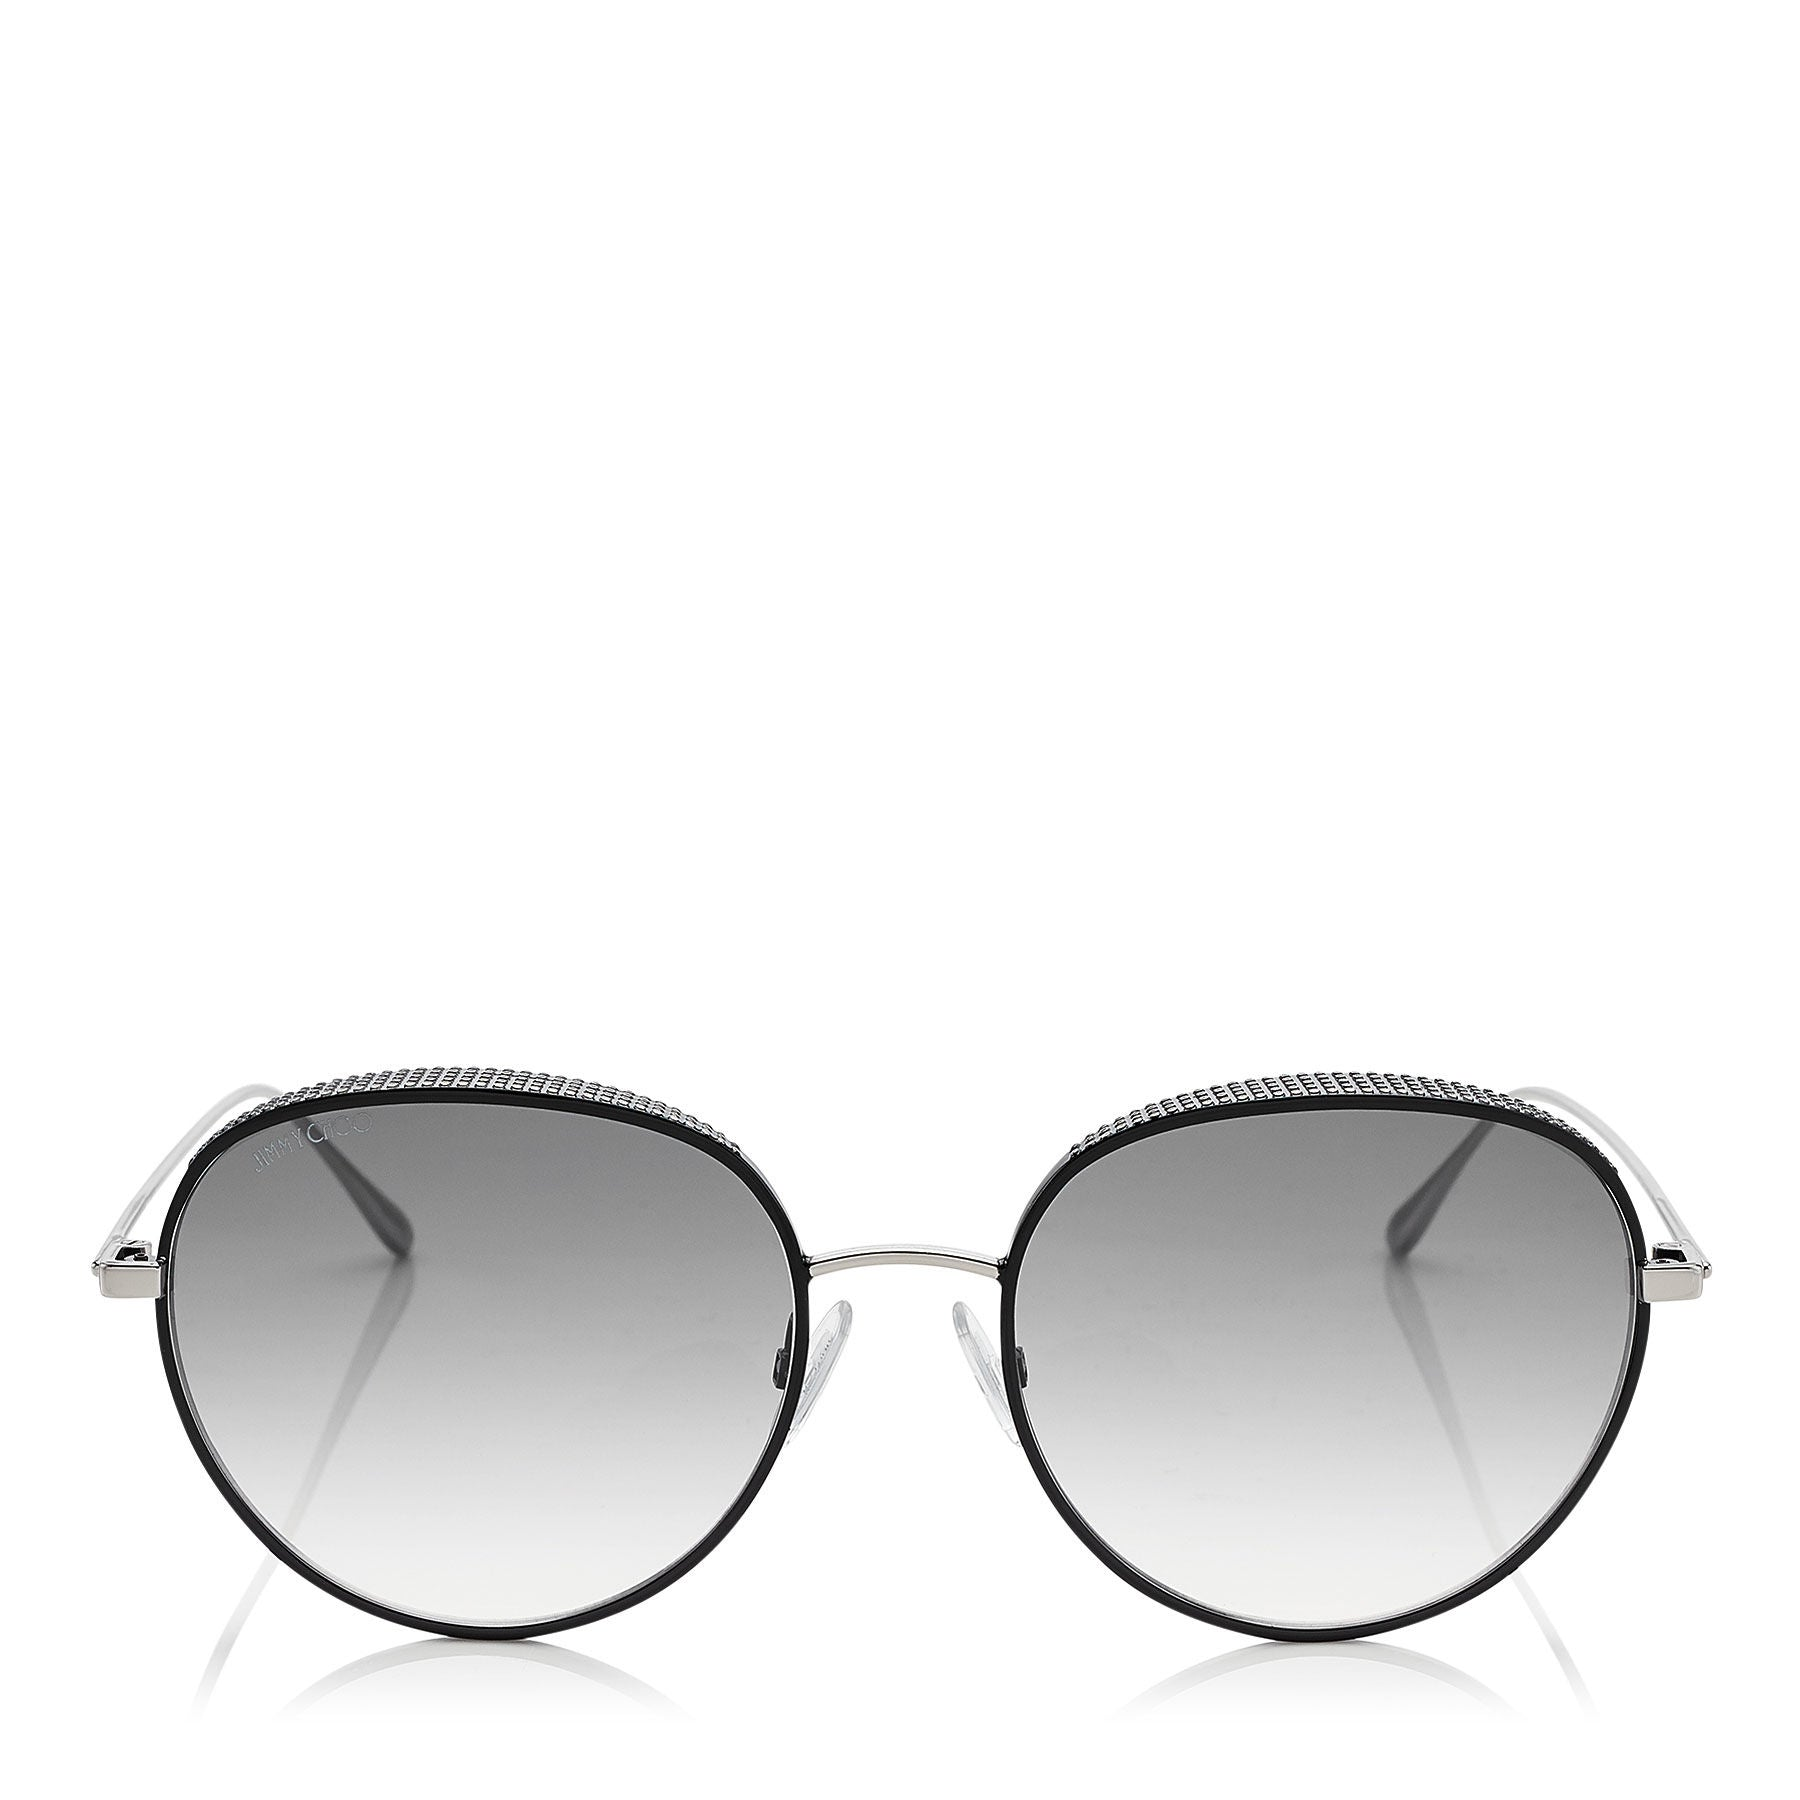 JIMMY CHOO Ello Black Palladium Sunglasses with Micro Stud Detailing ITEM NO. ELLOS56EJIN